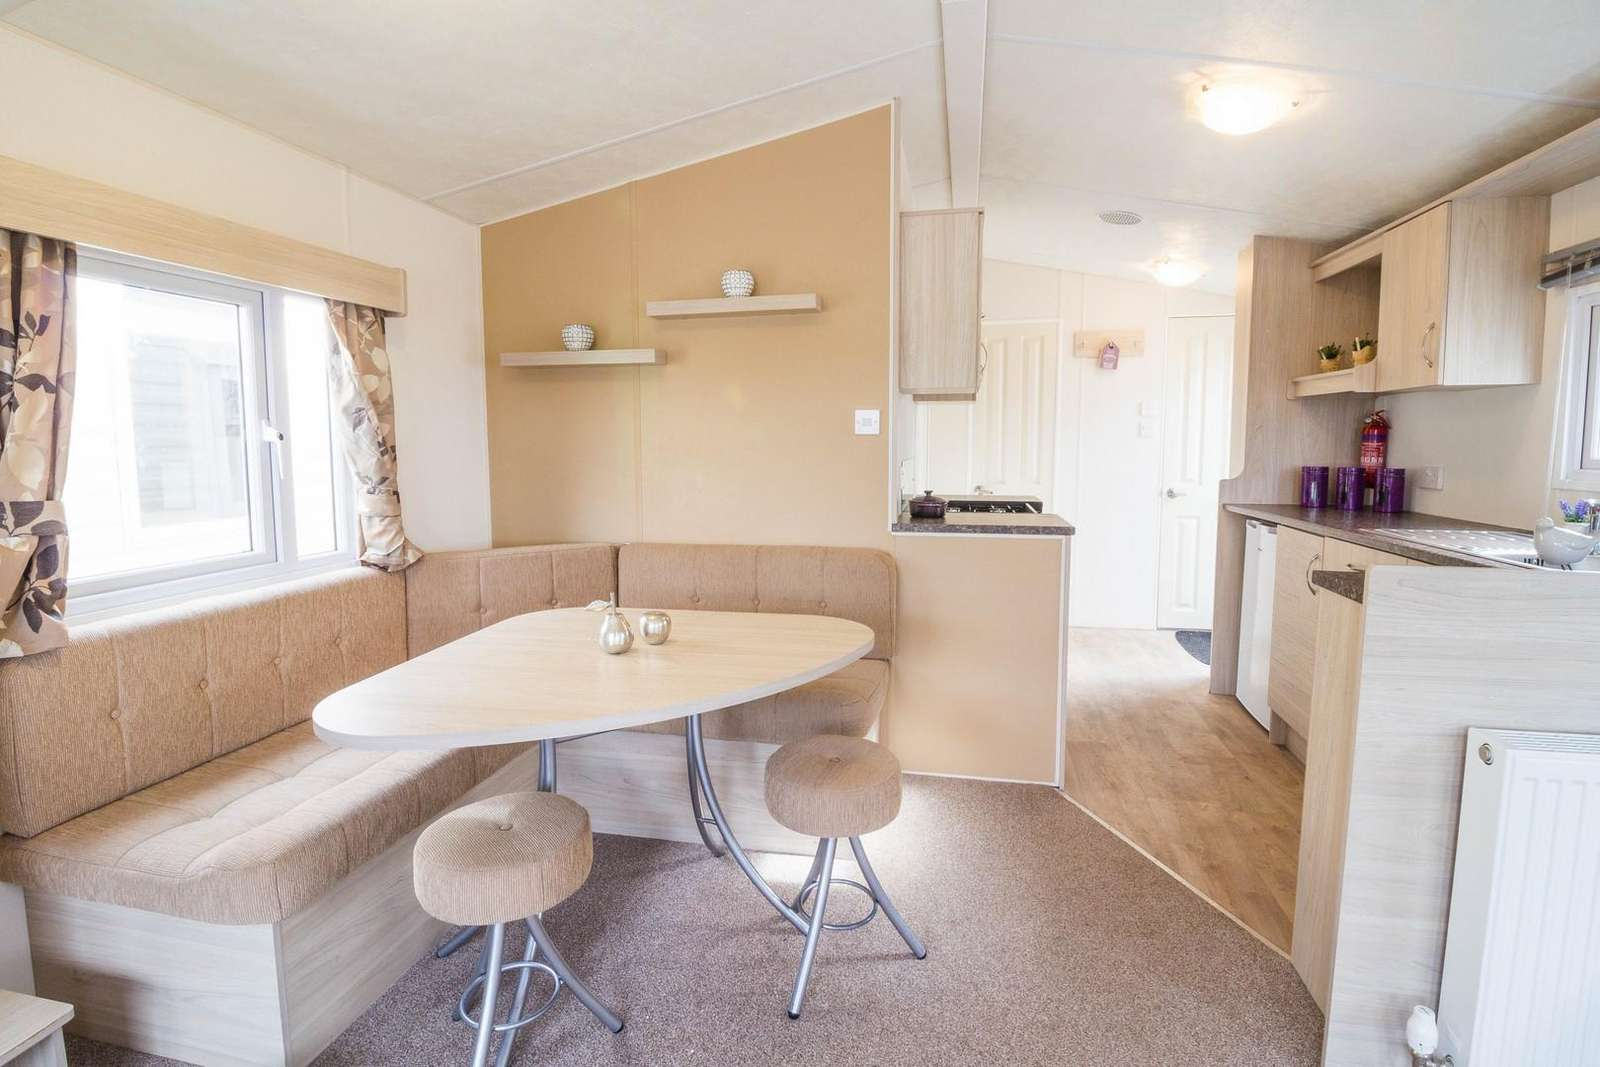 Come and stay in this private accommodation Broadland Sands Holiday Park